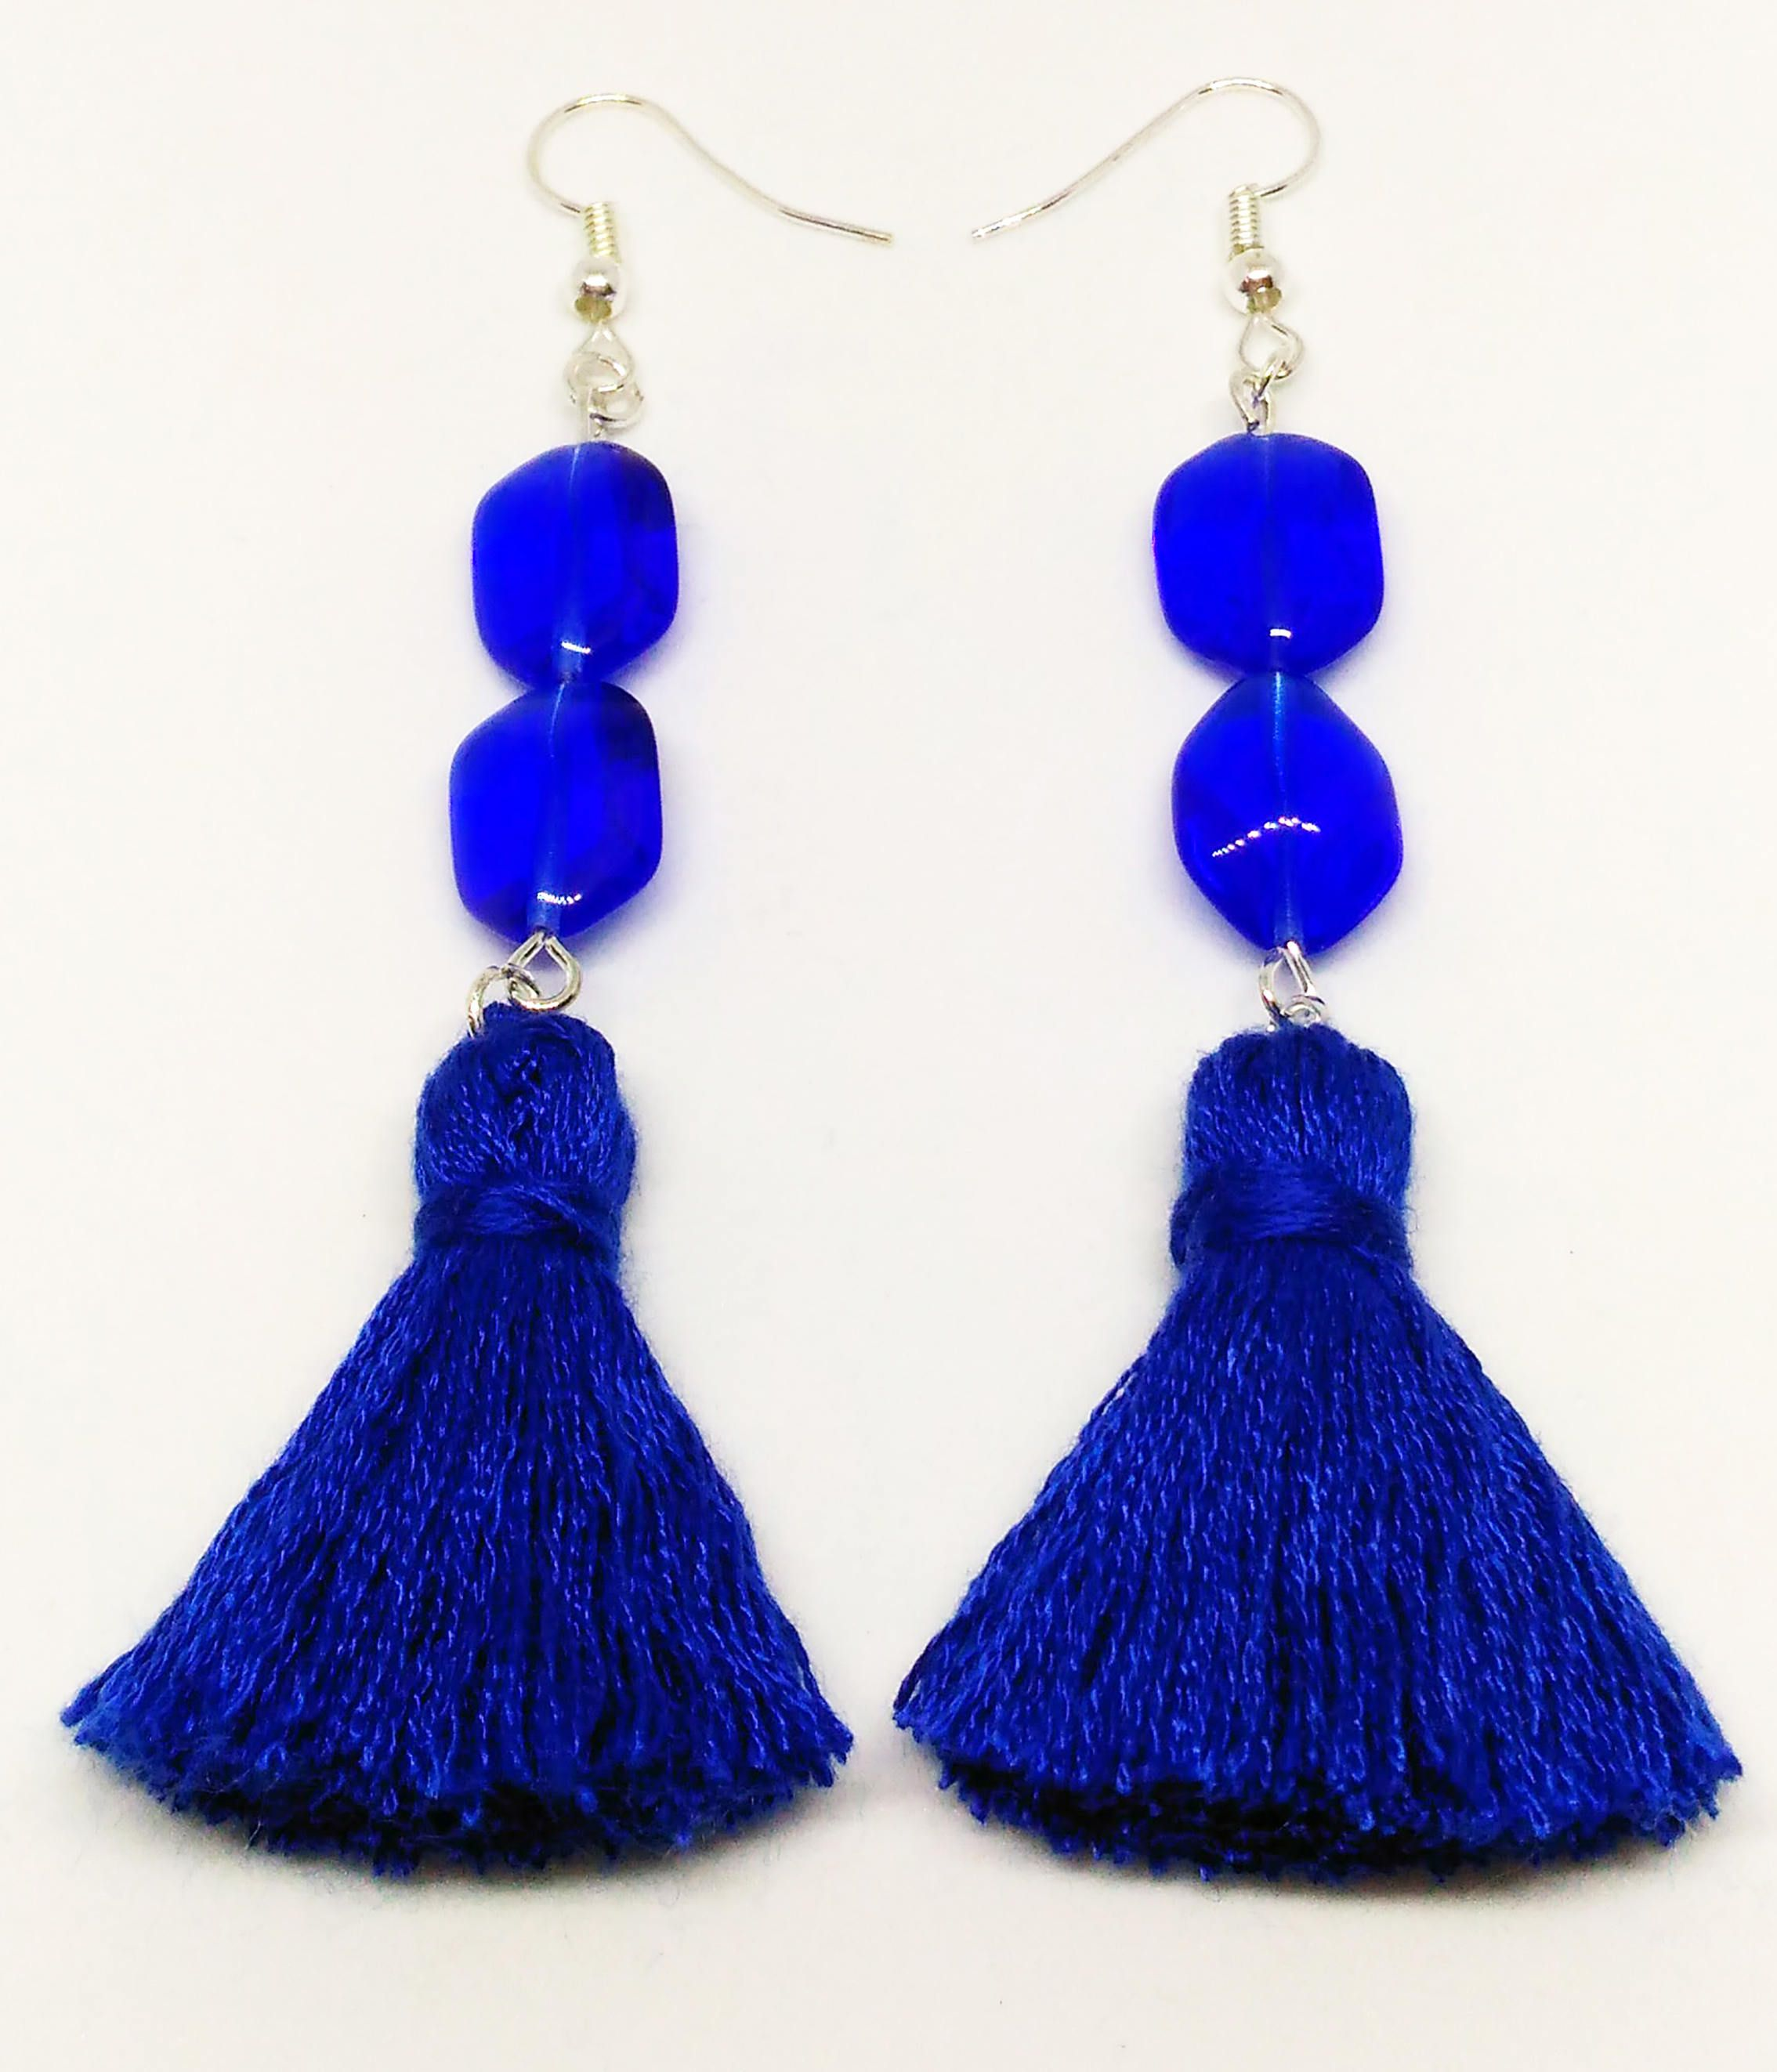 fringe m earrings haskell glitzy tassel product crystal down blue fritzy drop dropdown